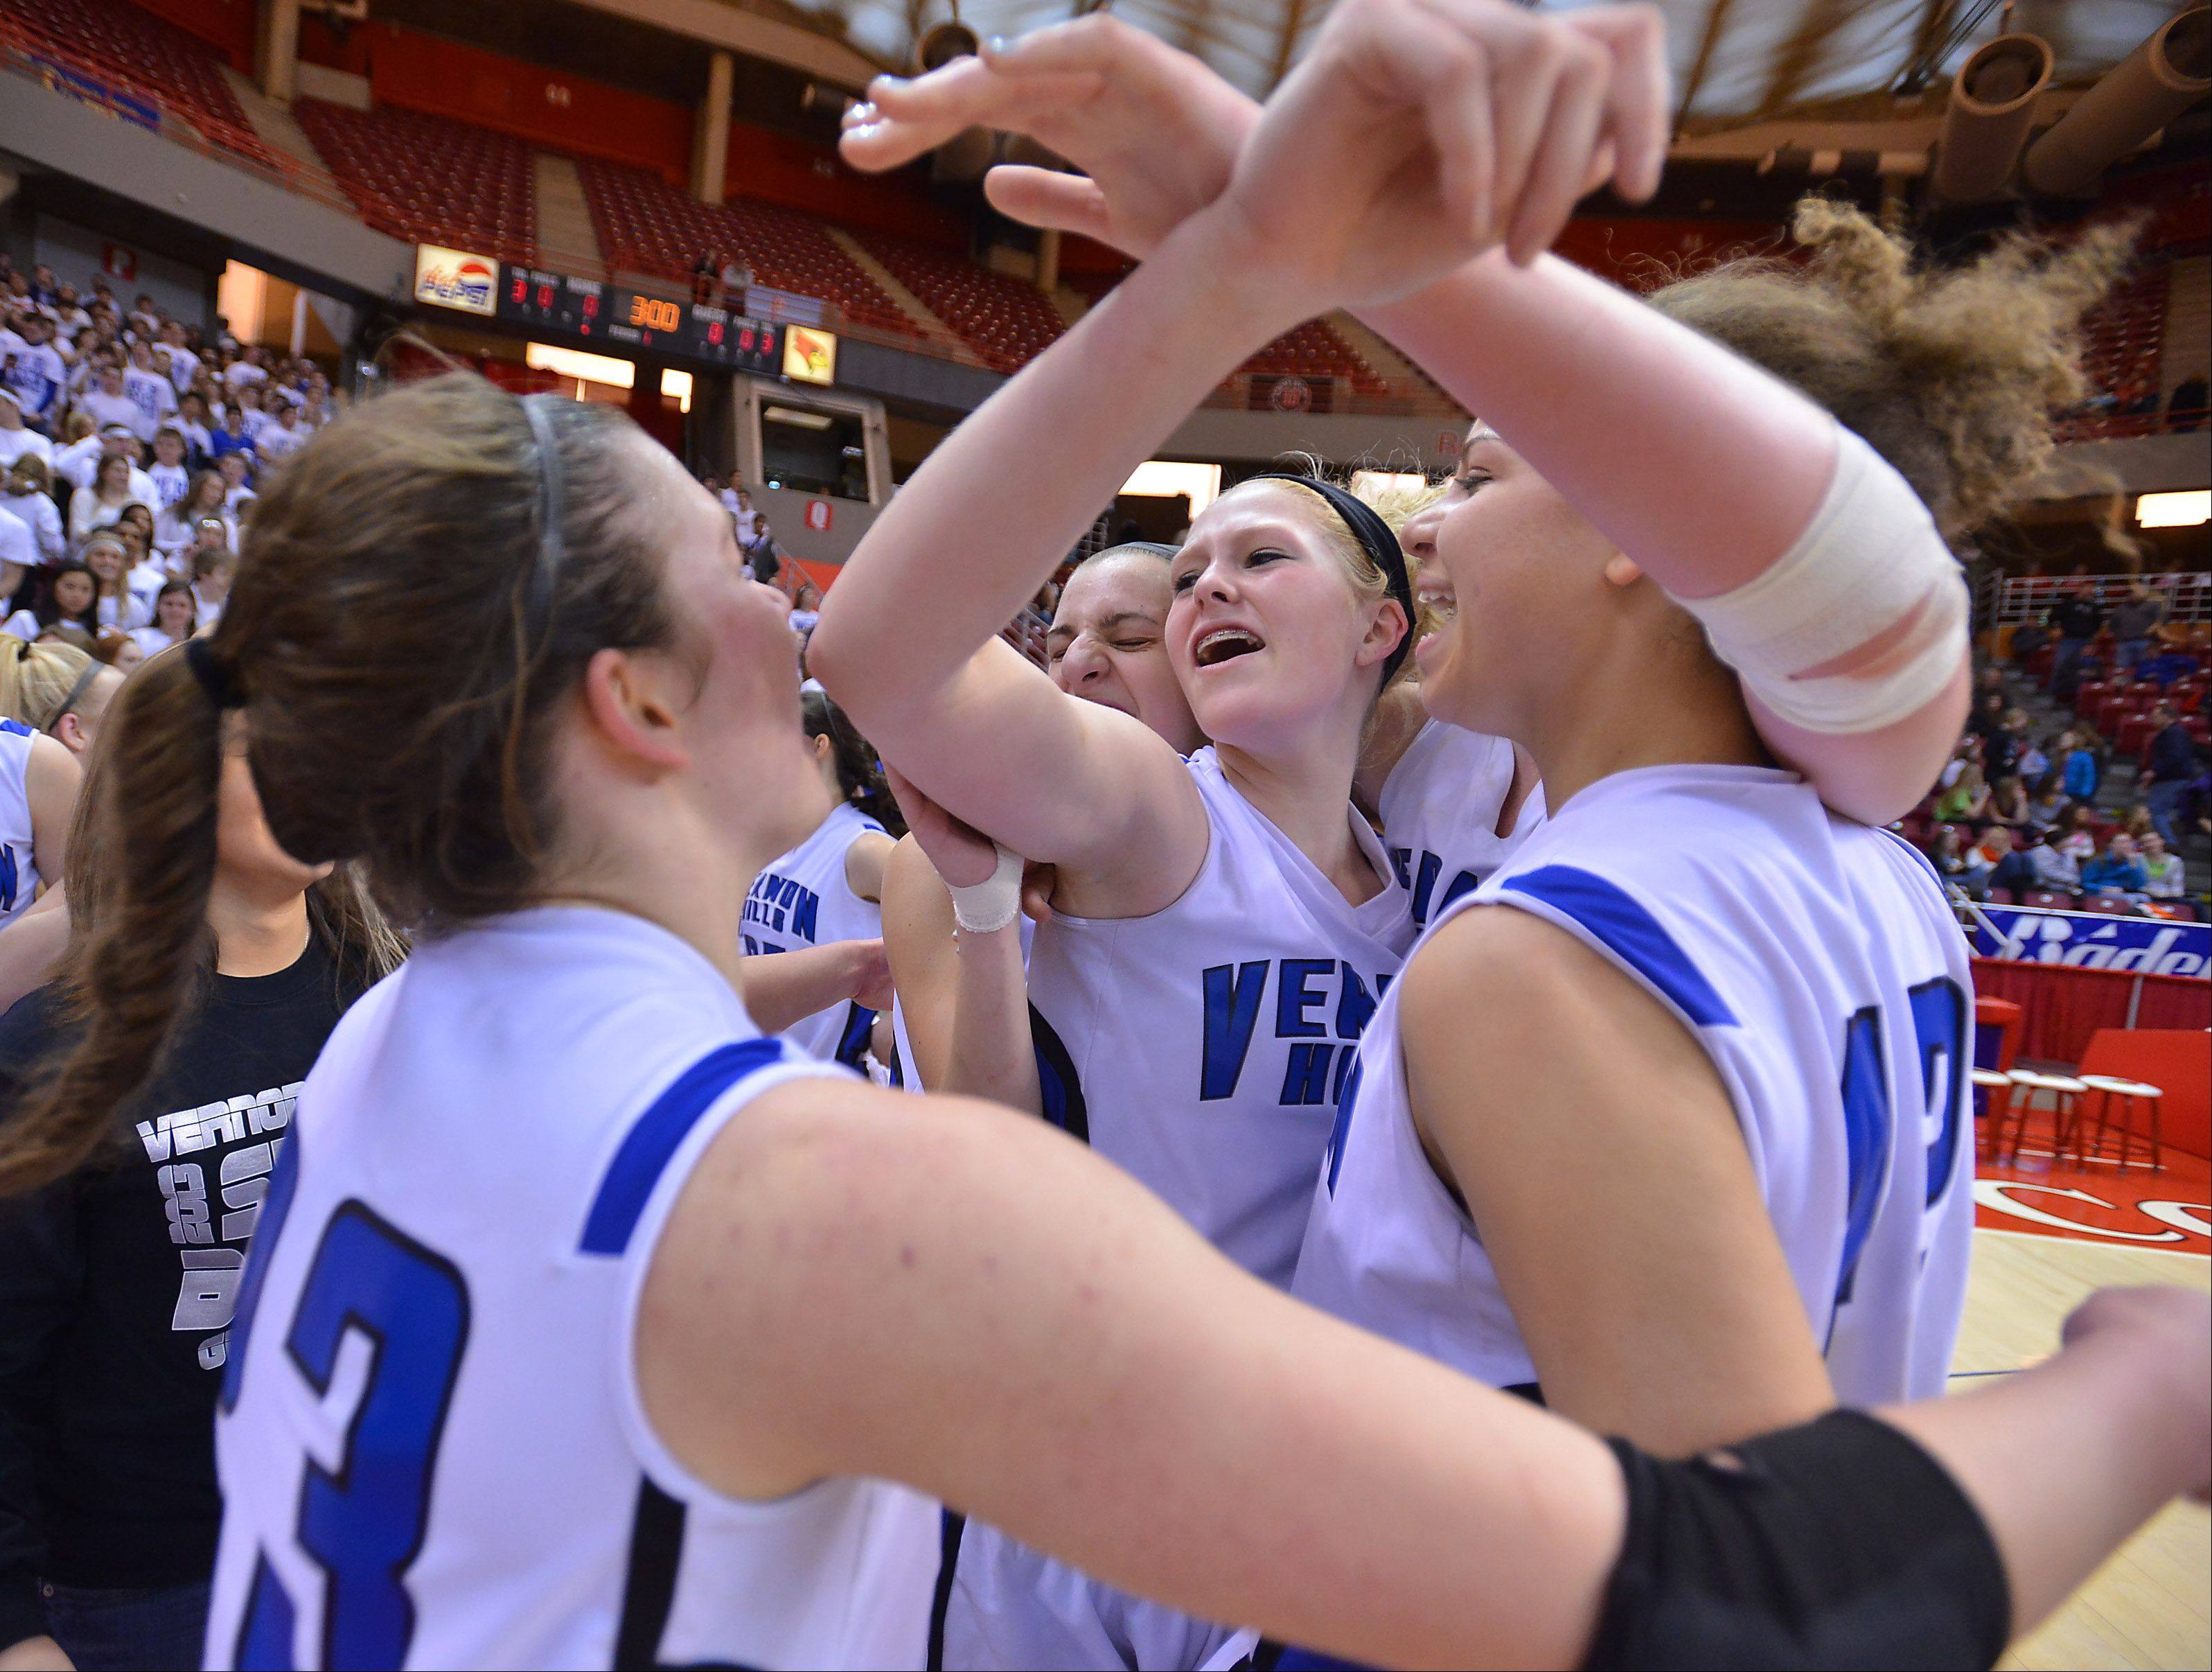 Images: Vernon Hills vs. Montini, girls basketball